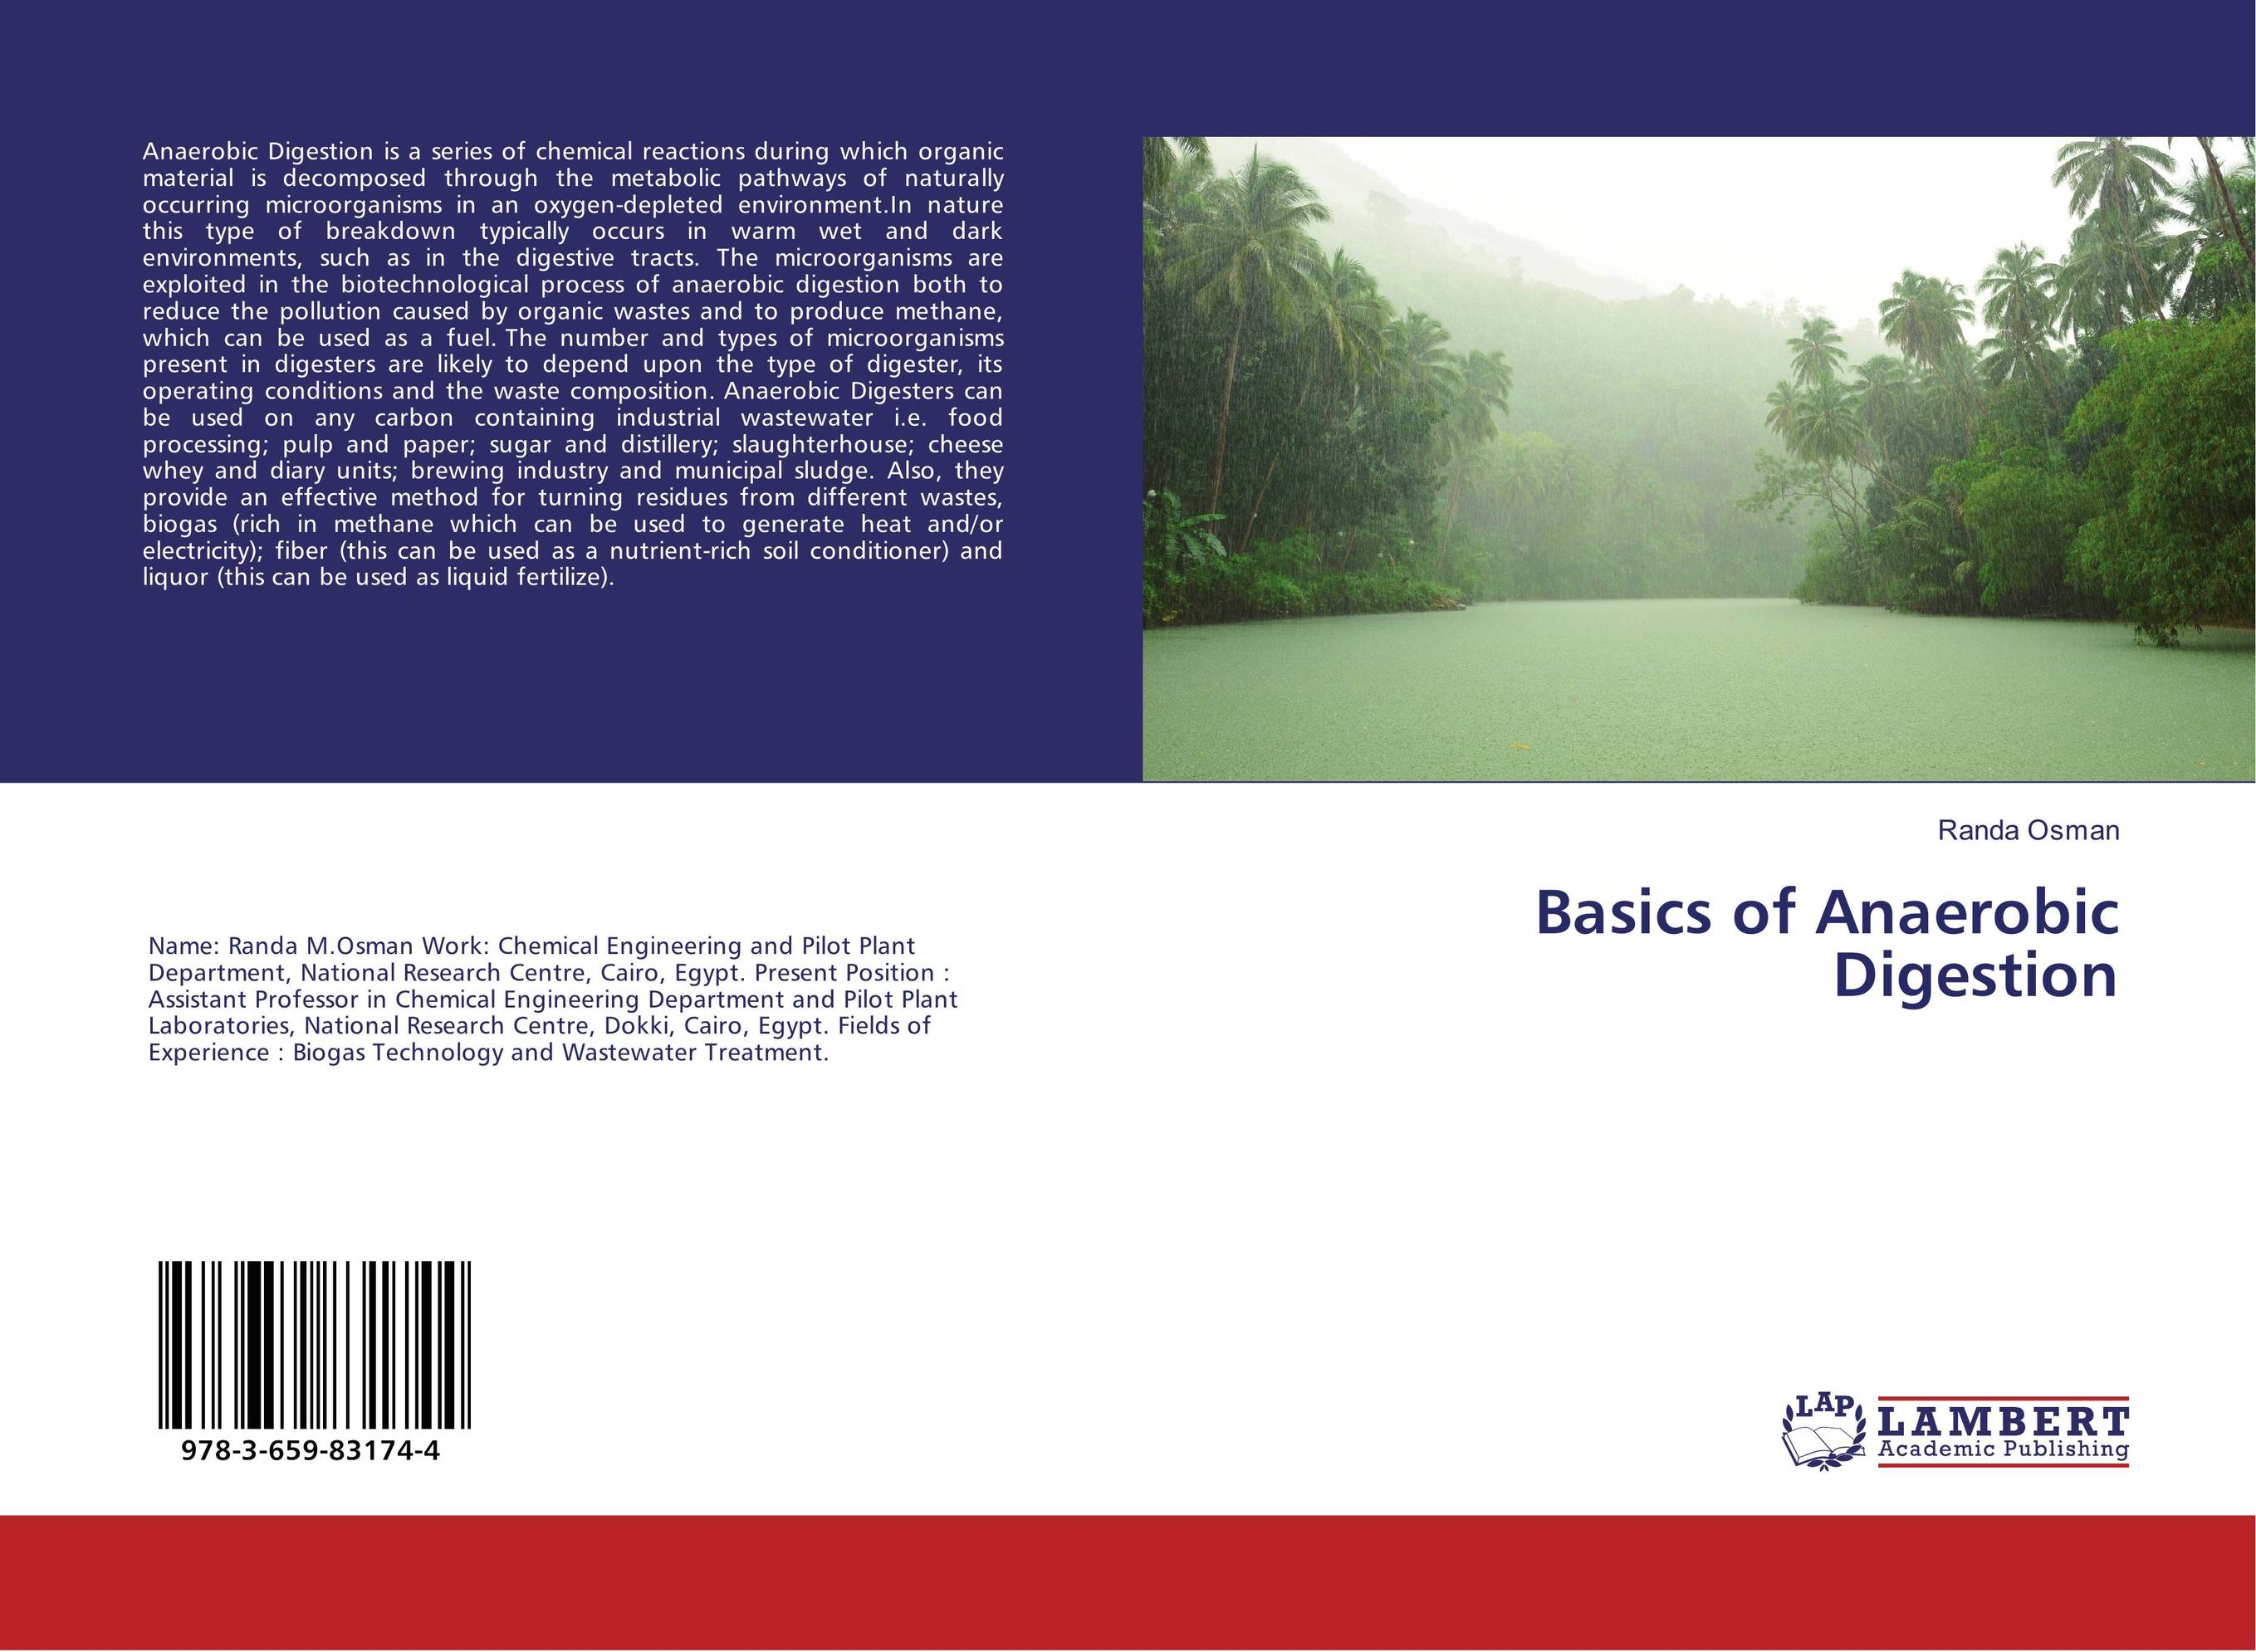 Basics of Anaerobic Digestion a a antonopoulos biotechnological advances in processing municipal wastes for fuels and chemicals